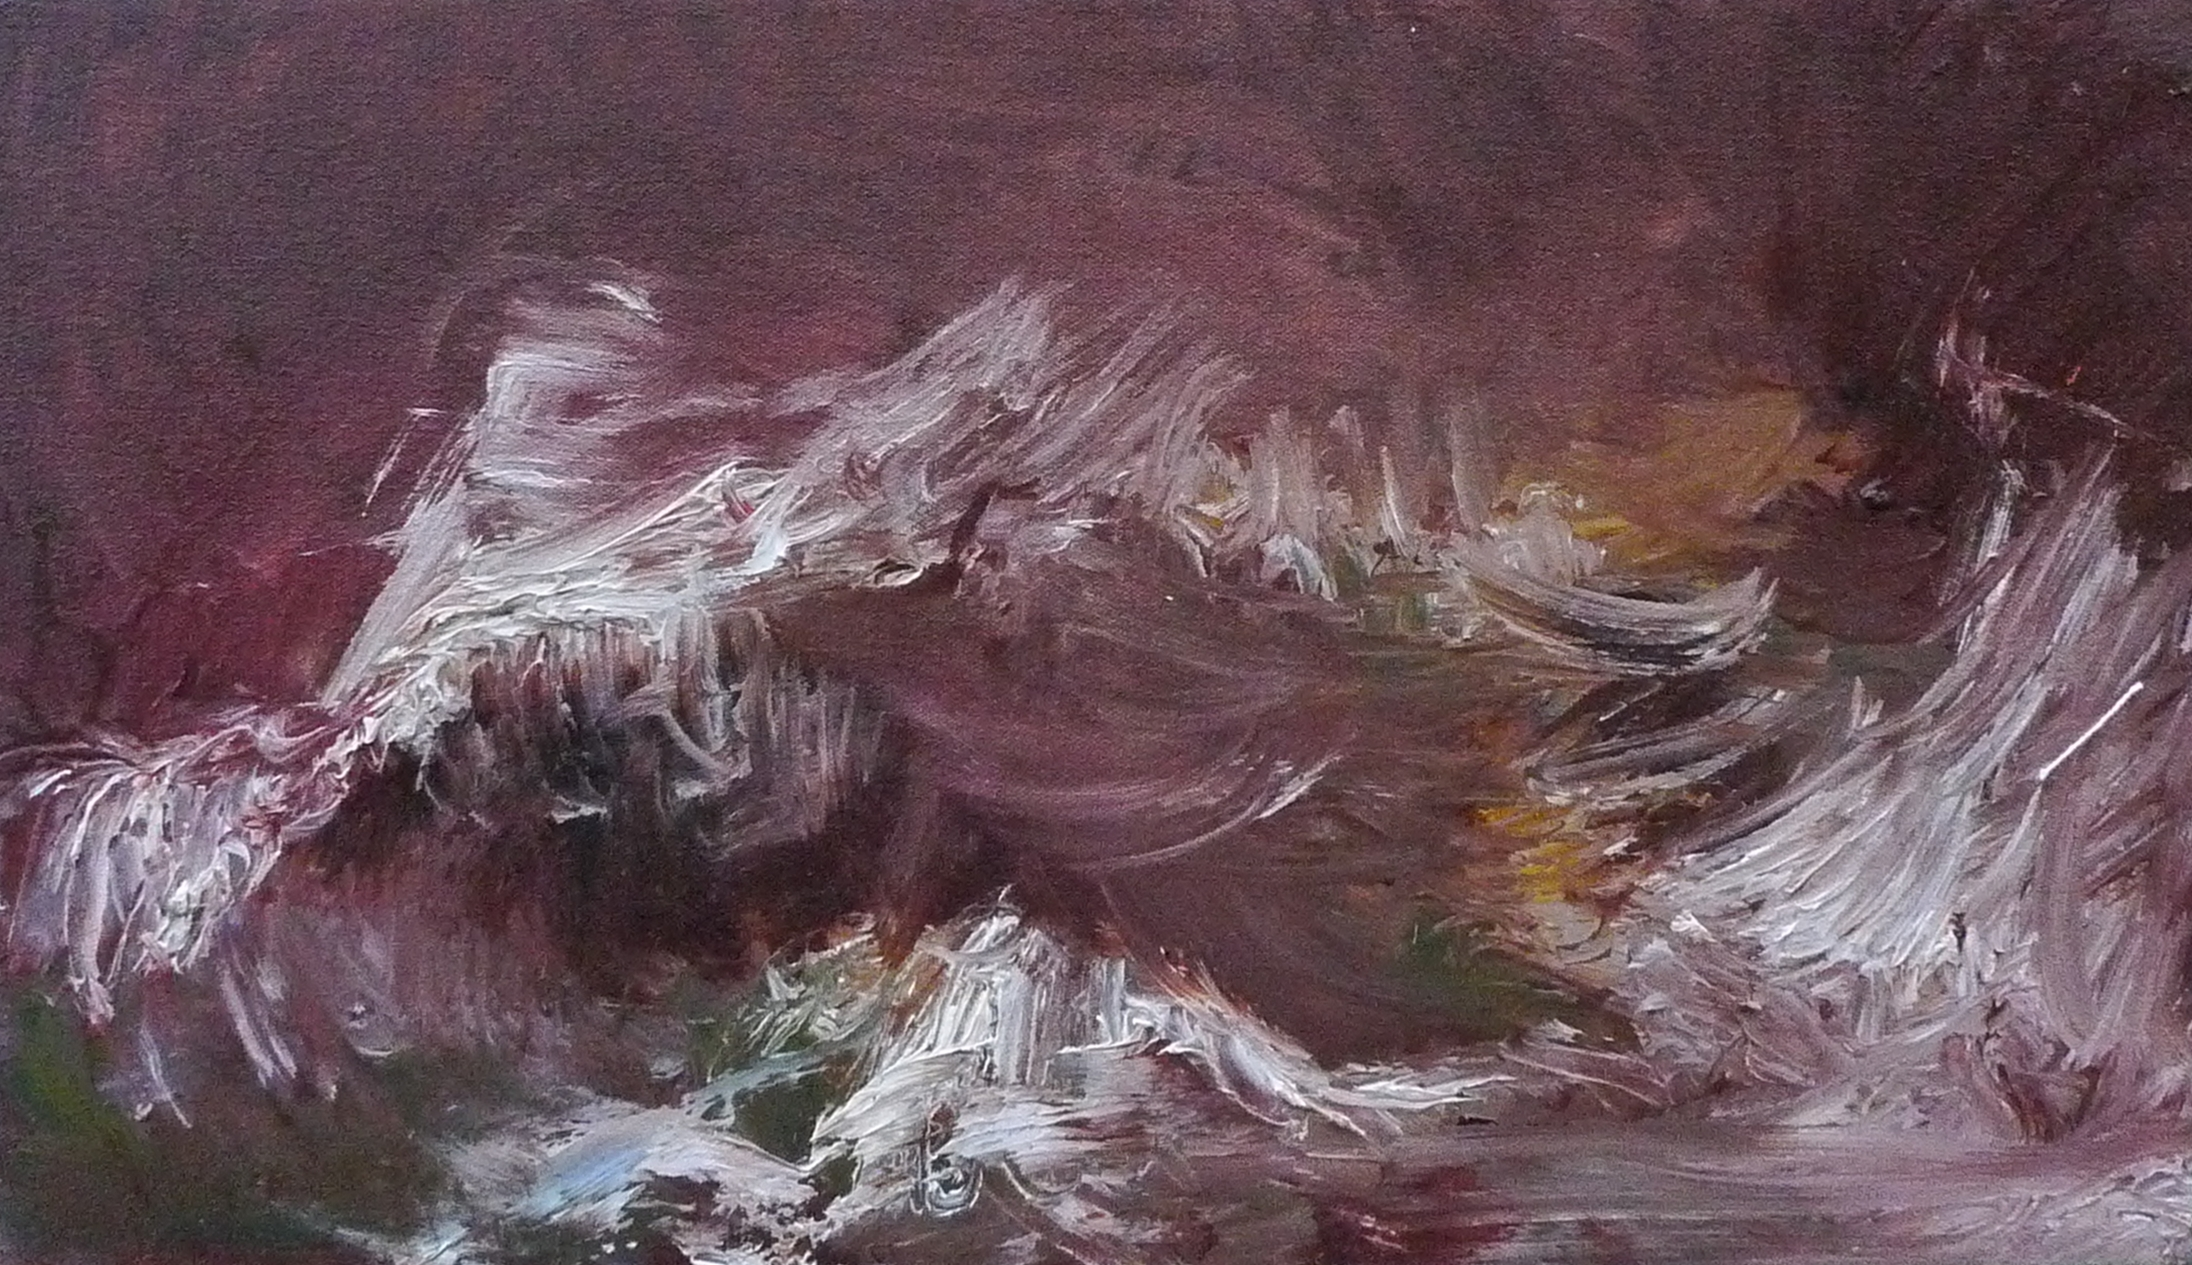 cc.2009.oil on canvas.22x12.75.JPG